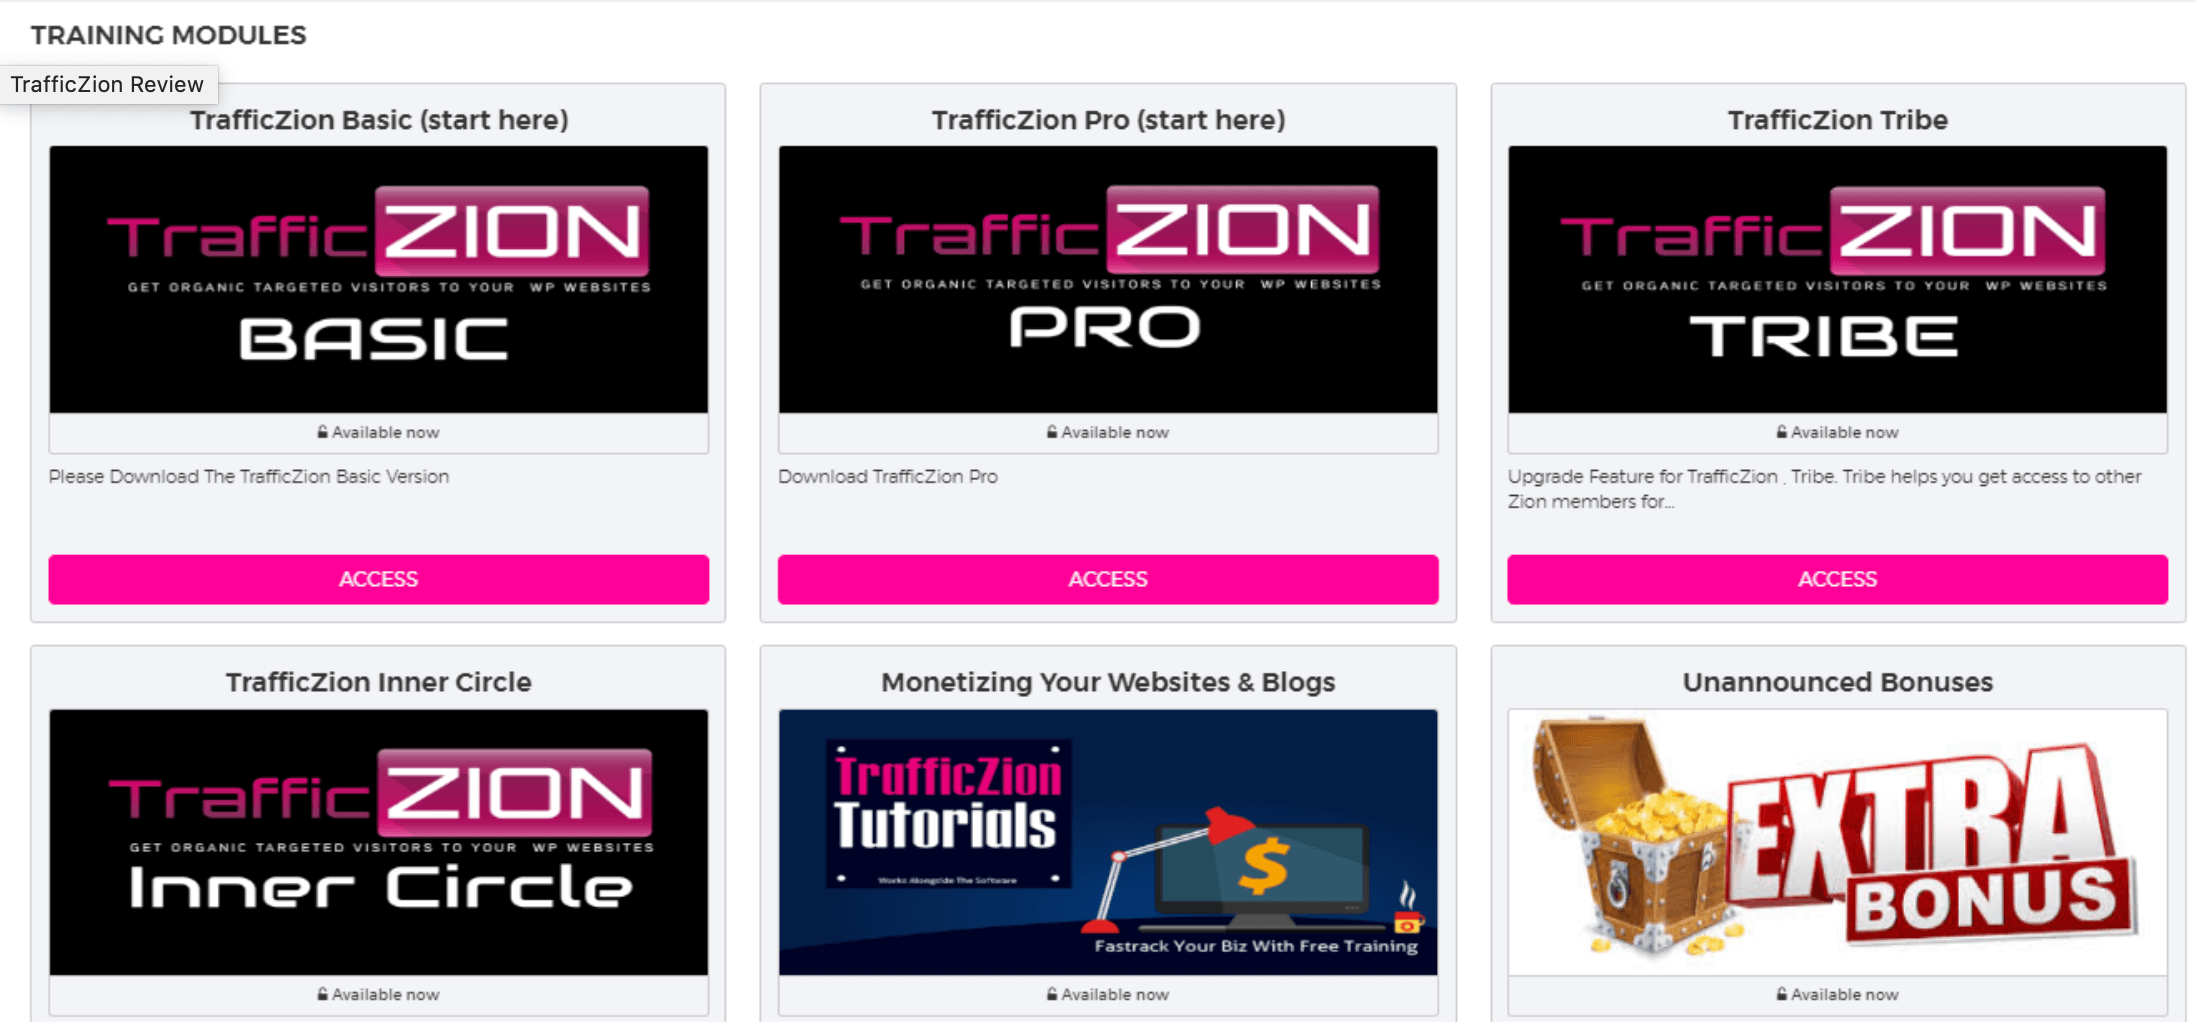 trafficzion modules